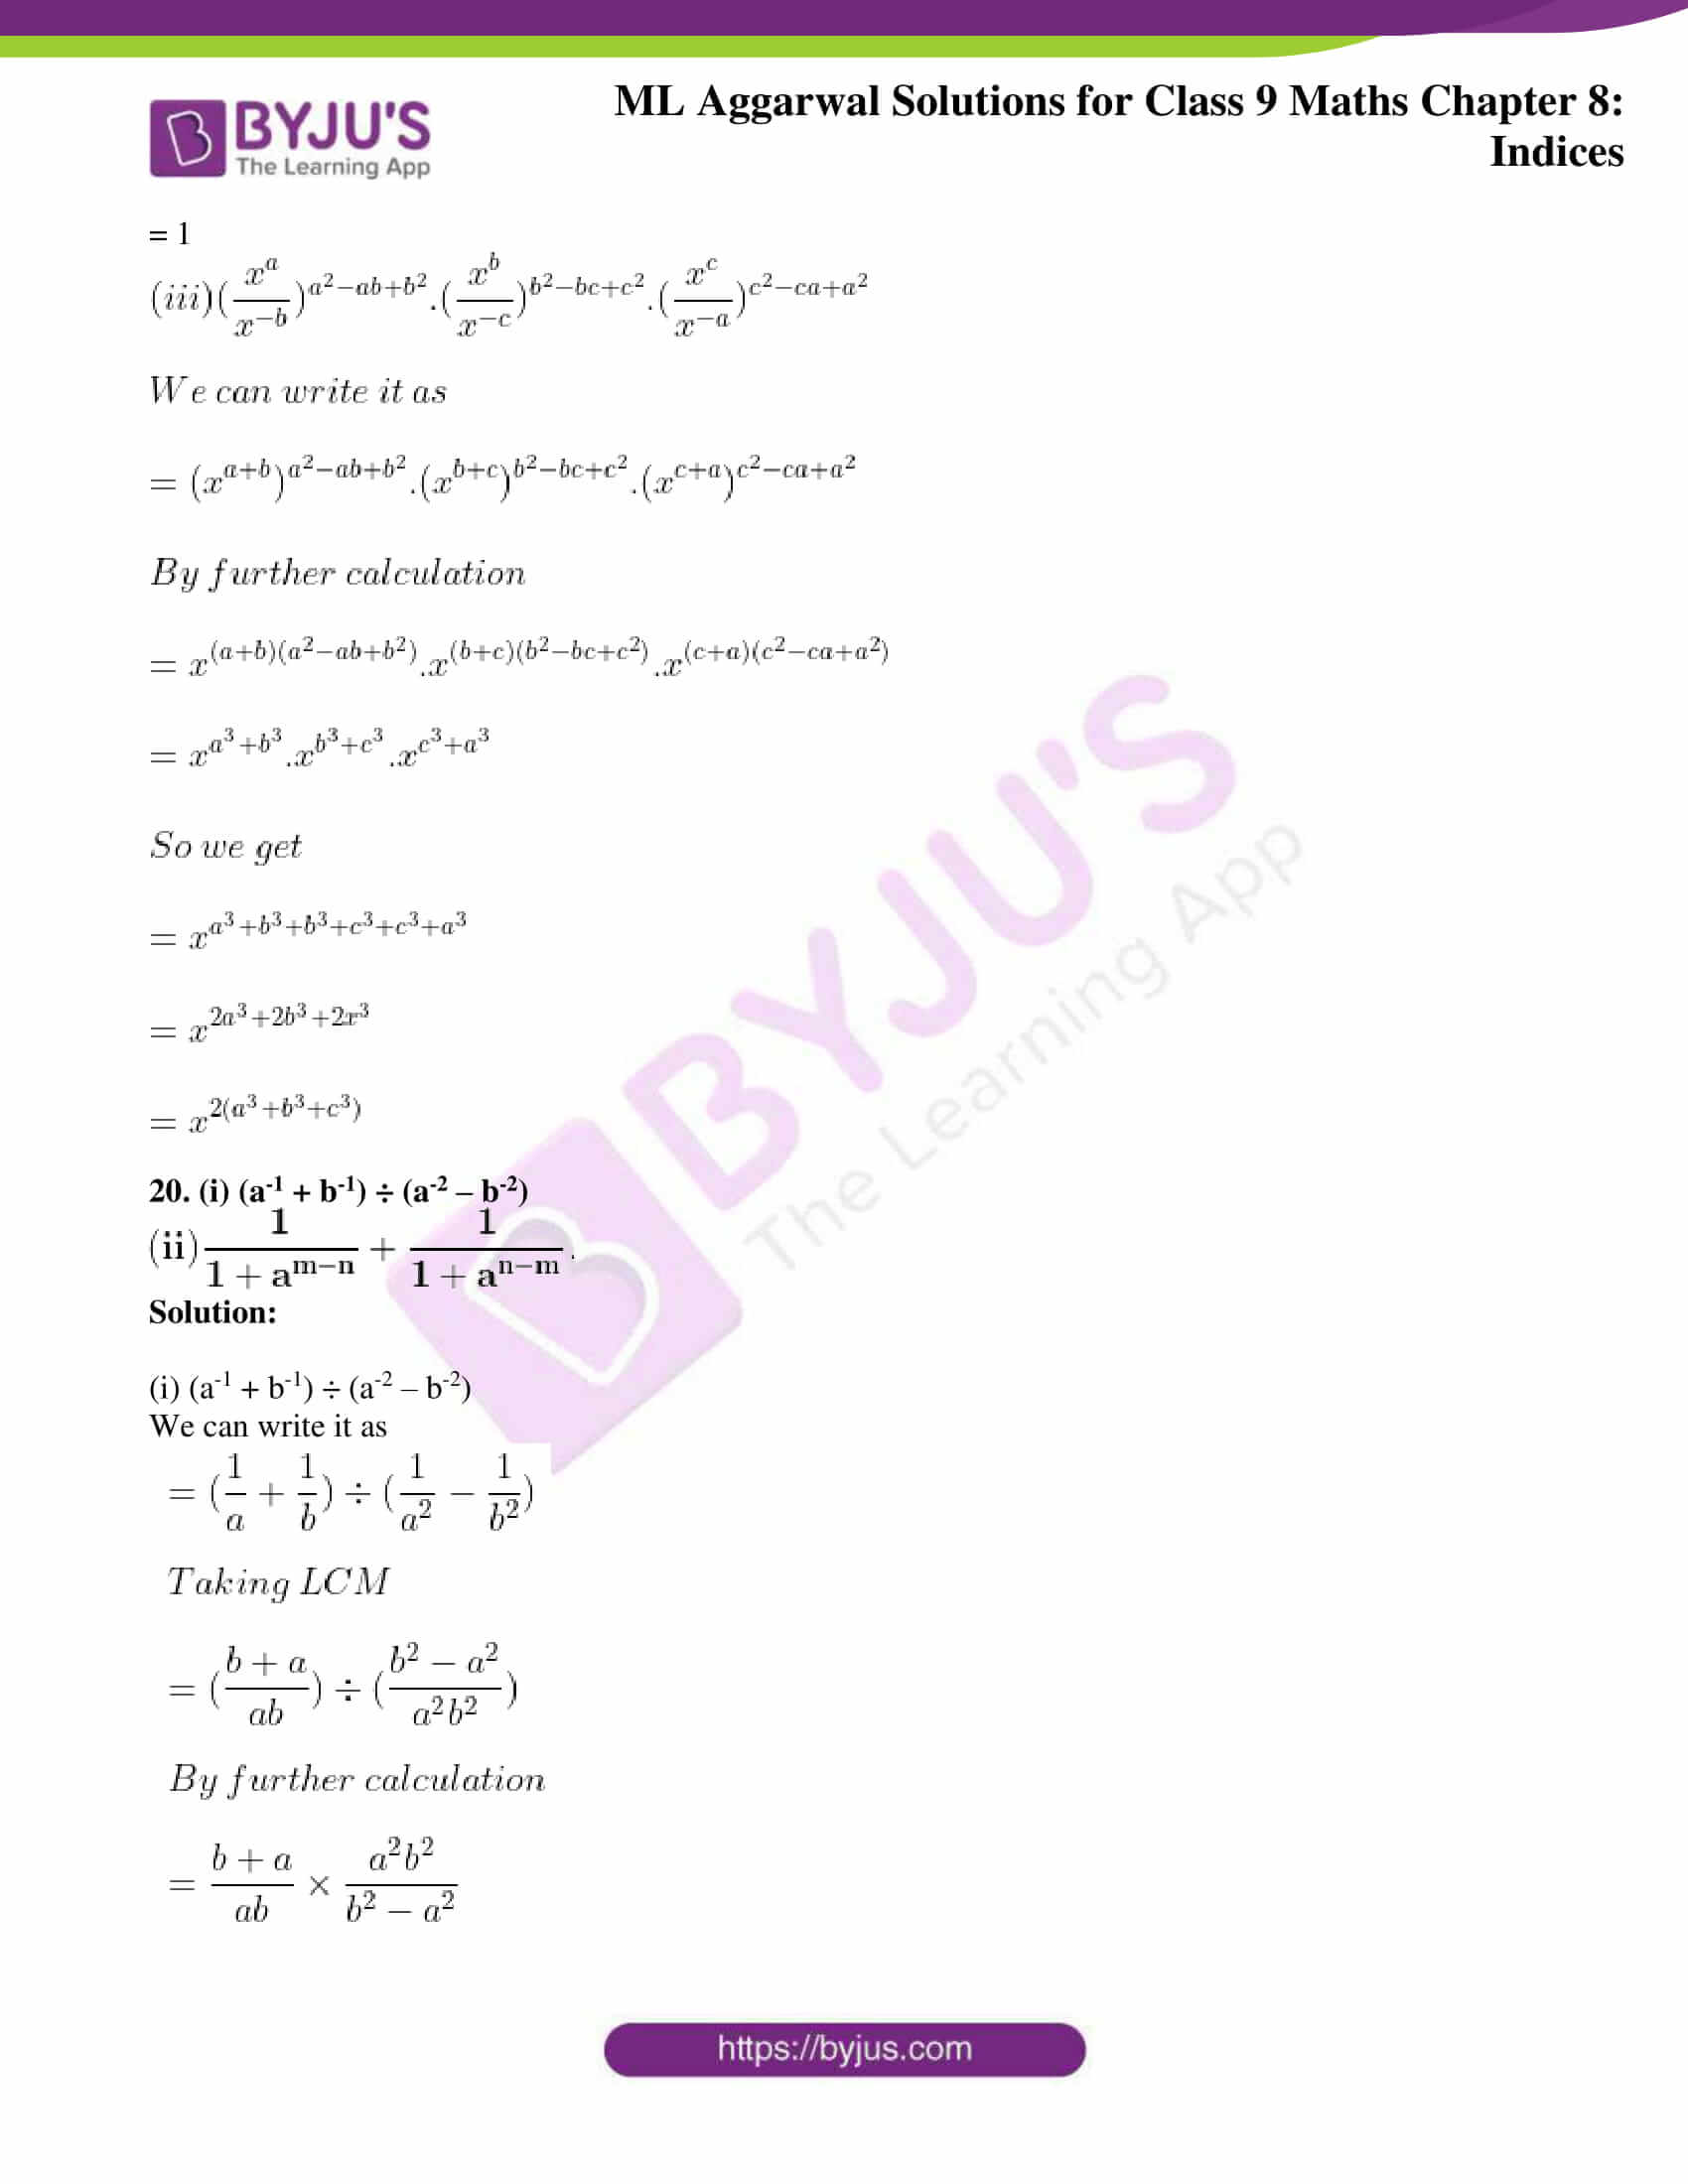 ml aggarwal solutions for class 9 maths chapter 8 22